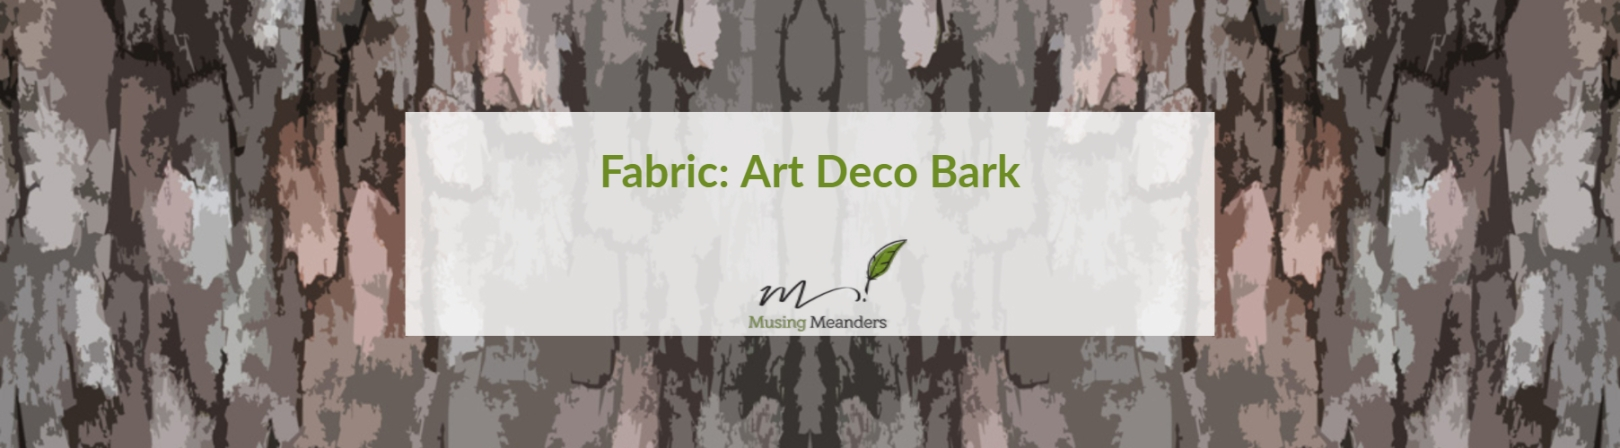 Art-Deco-Bark-Fabric-Design-byLisa-G-Hunter-Musing-Meanders